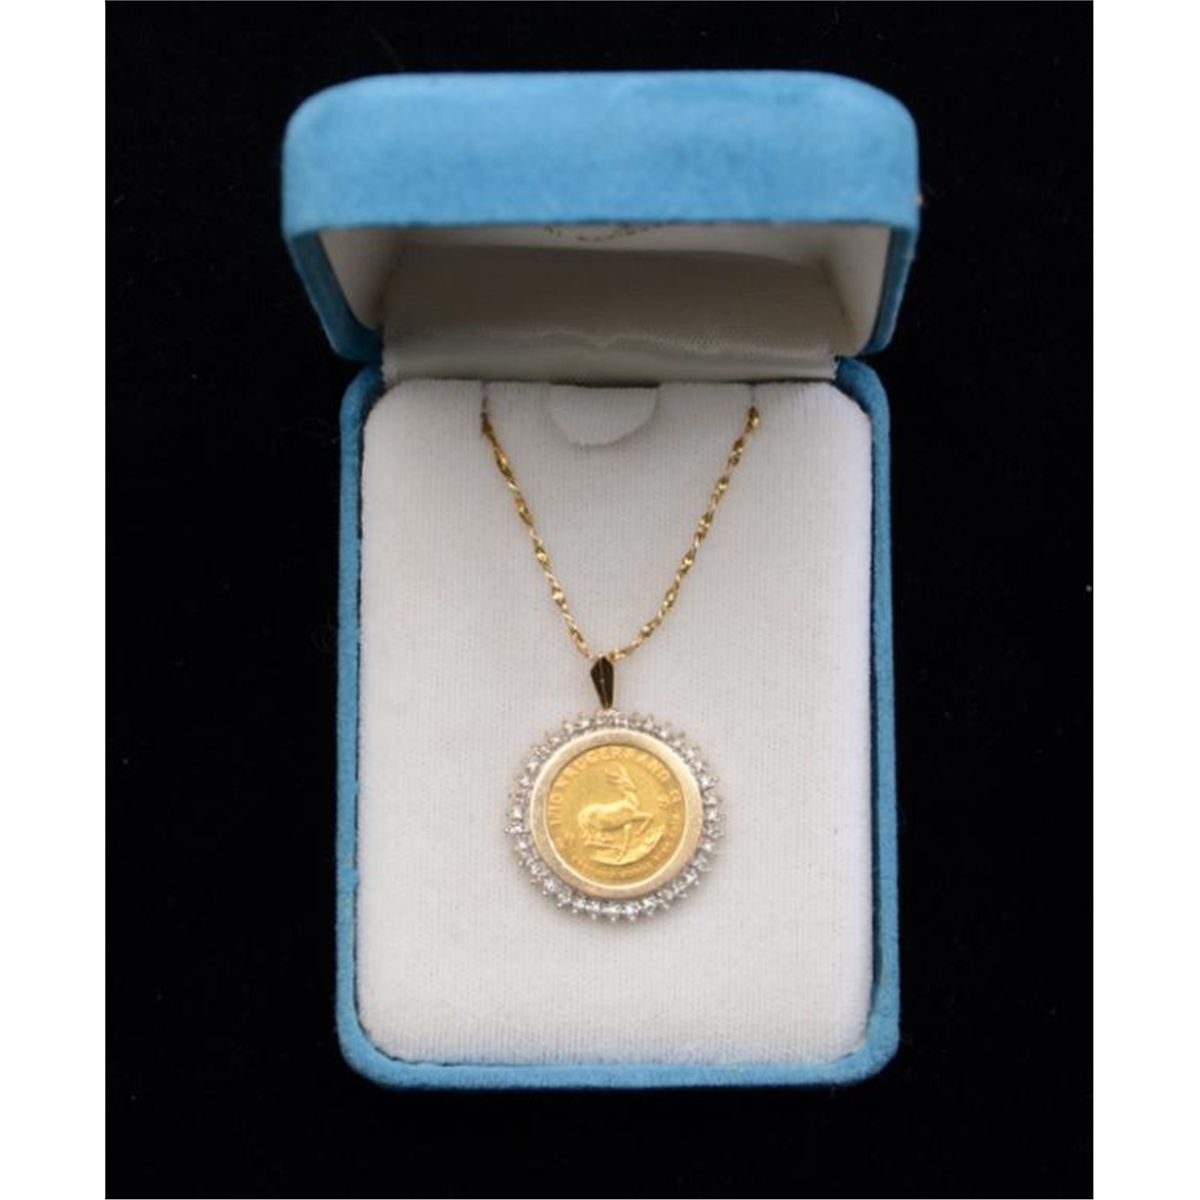 One 1 10 Krugerrand Fine Gold Coin Set In A Diamond Bezel With 14k Chain Wt 0 30ct E